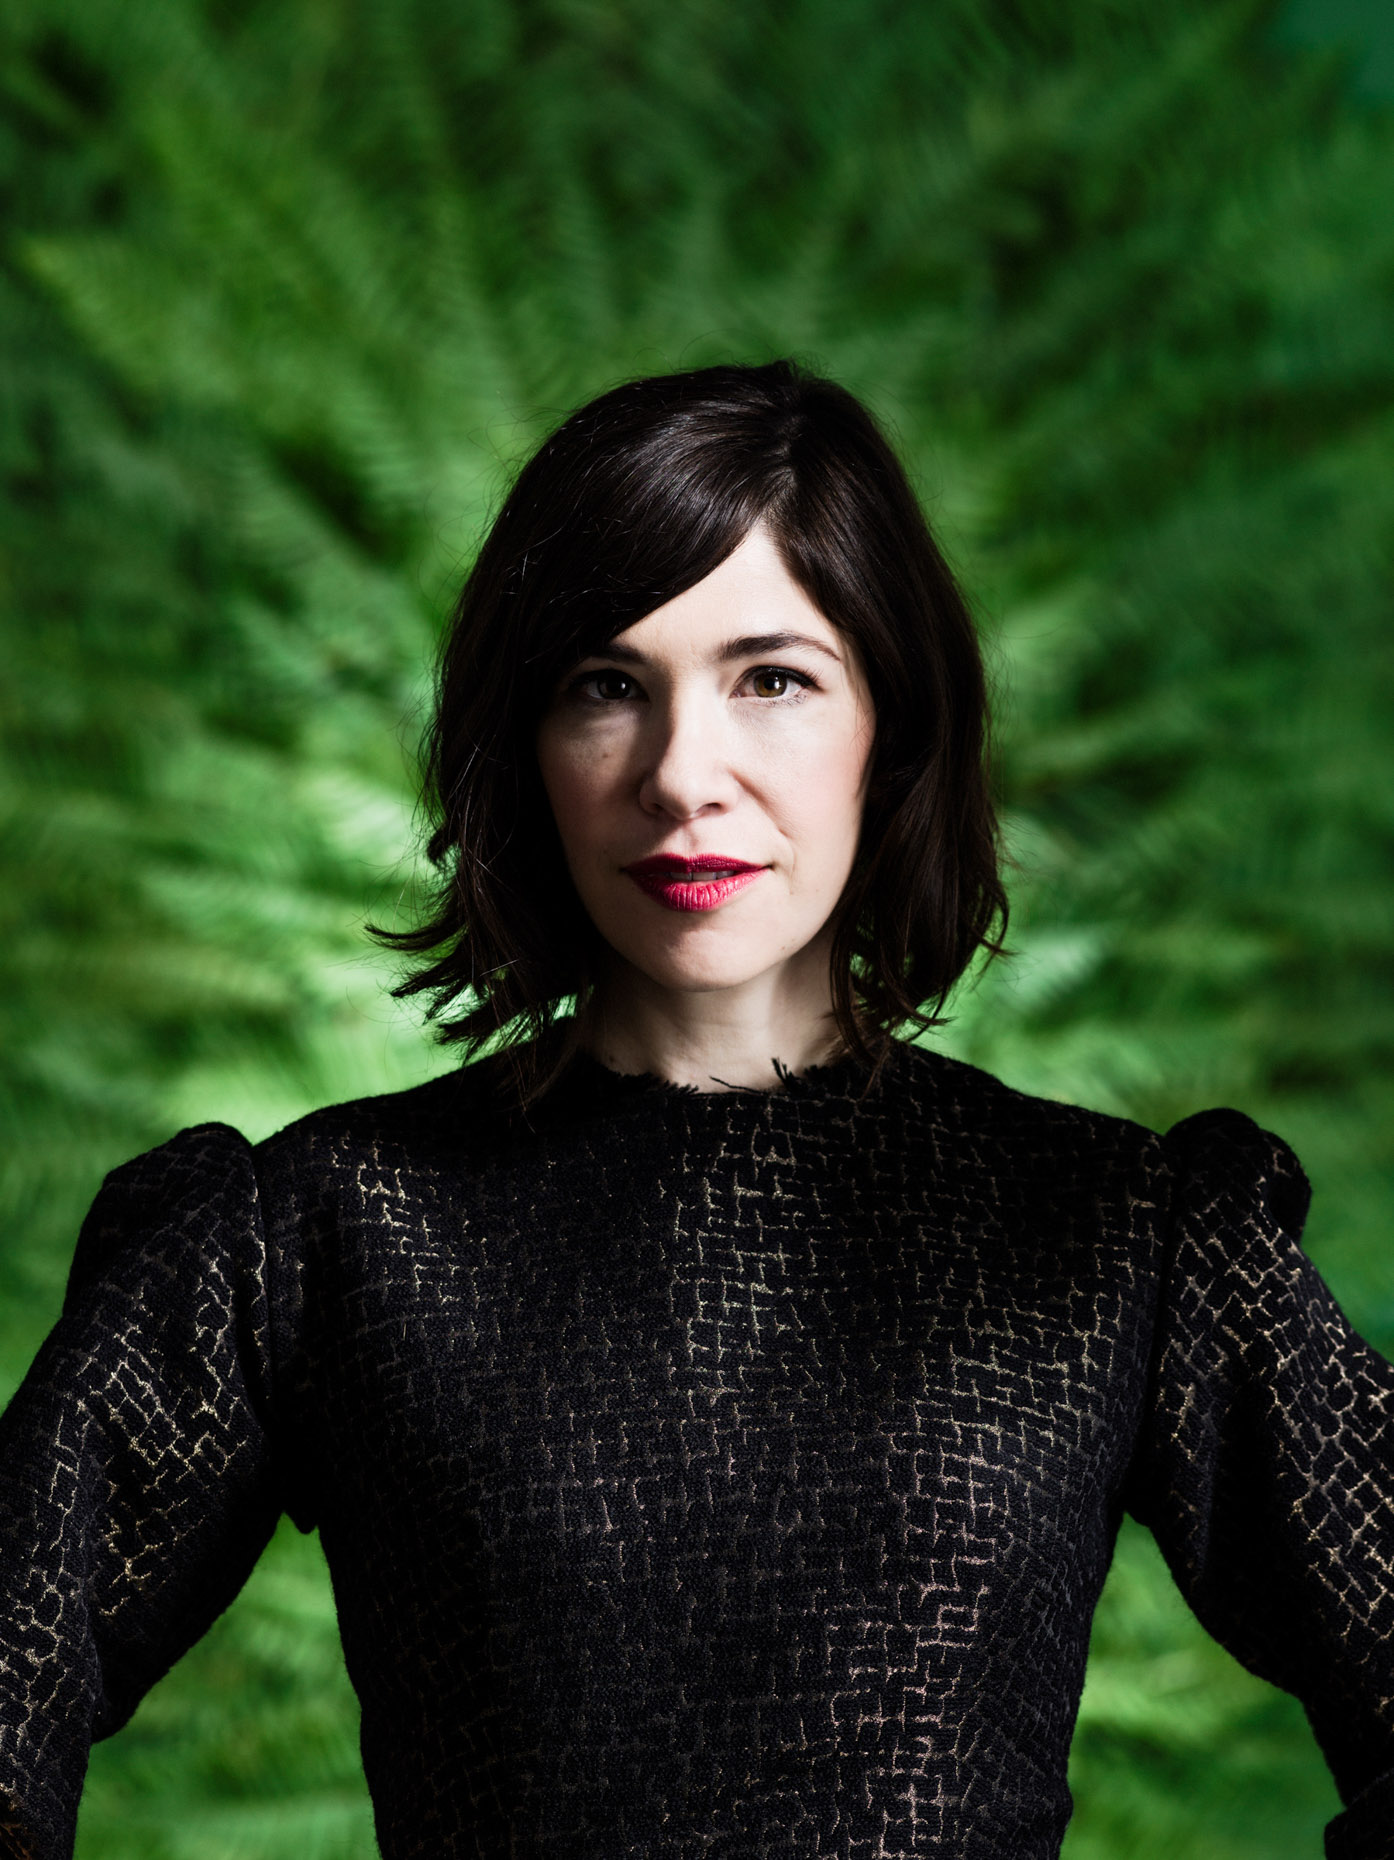 Actor and Musician Carrie Brownstein for Portland Monthly Magazine